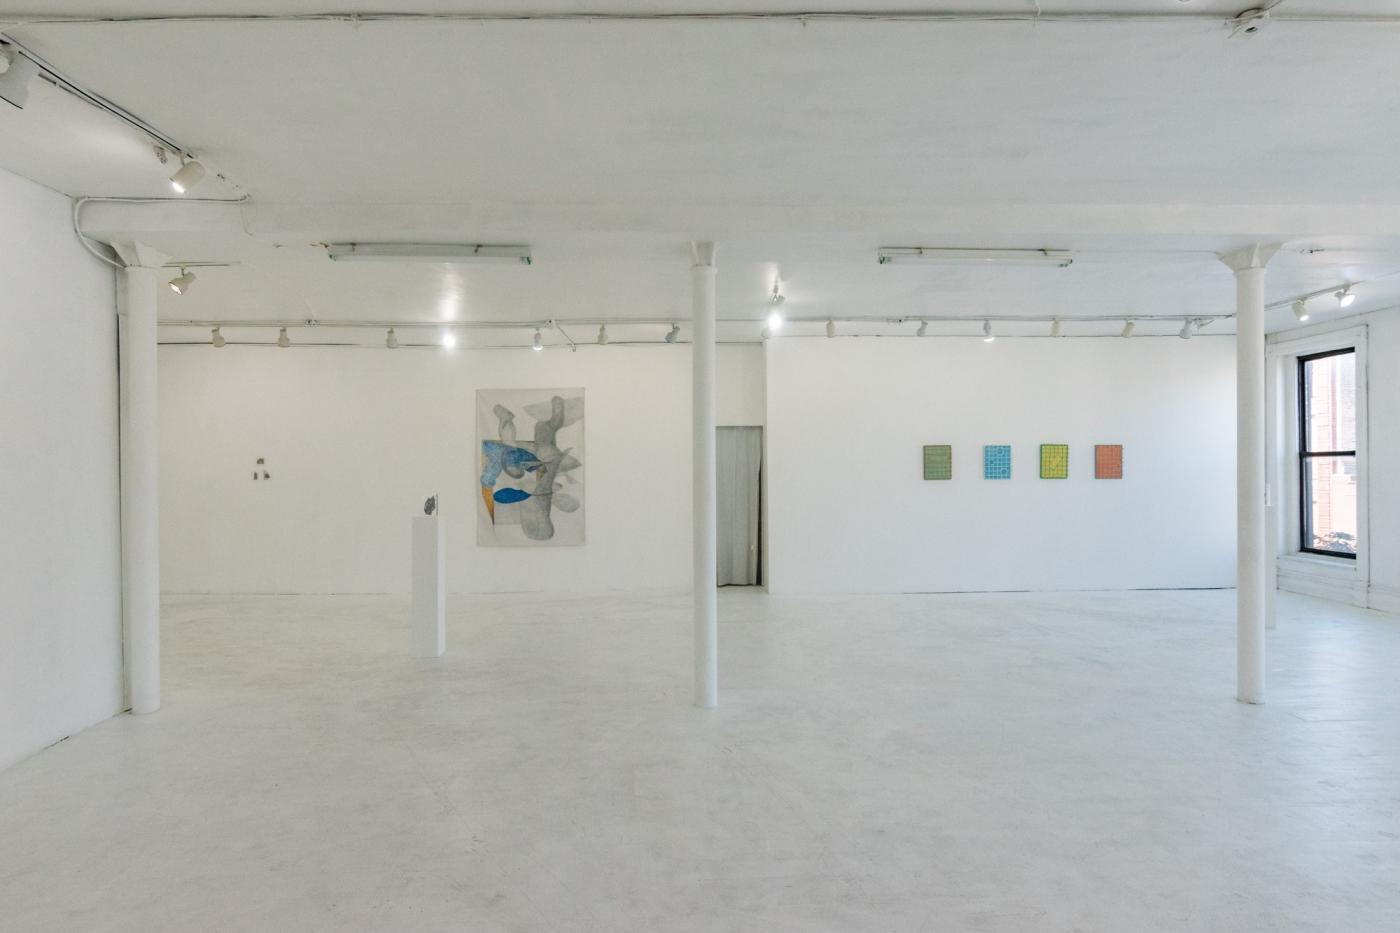 A gallery space with white walls and floors. A few pieces are hung on a wall.